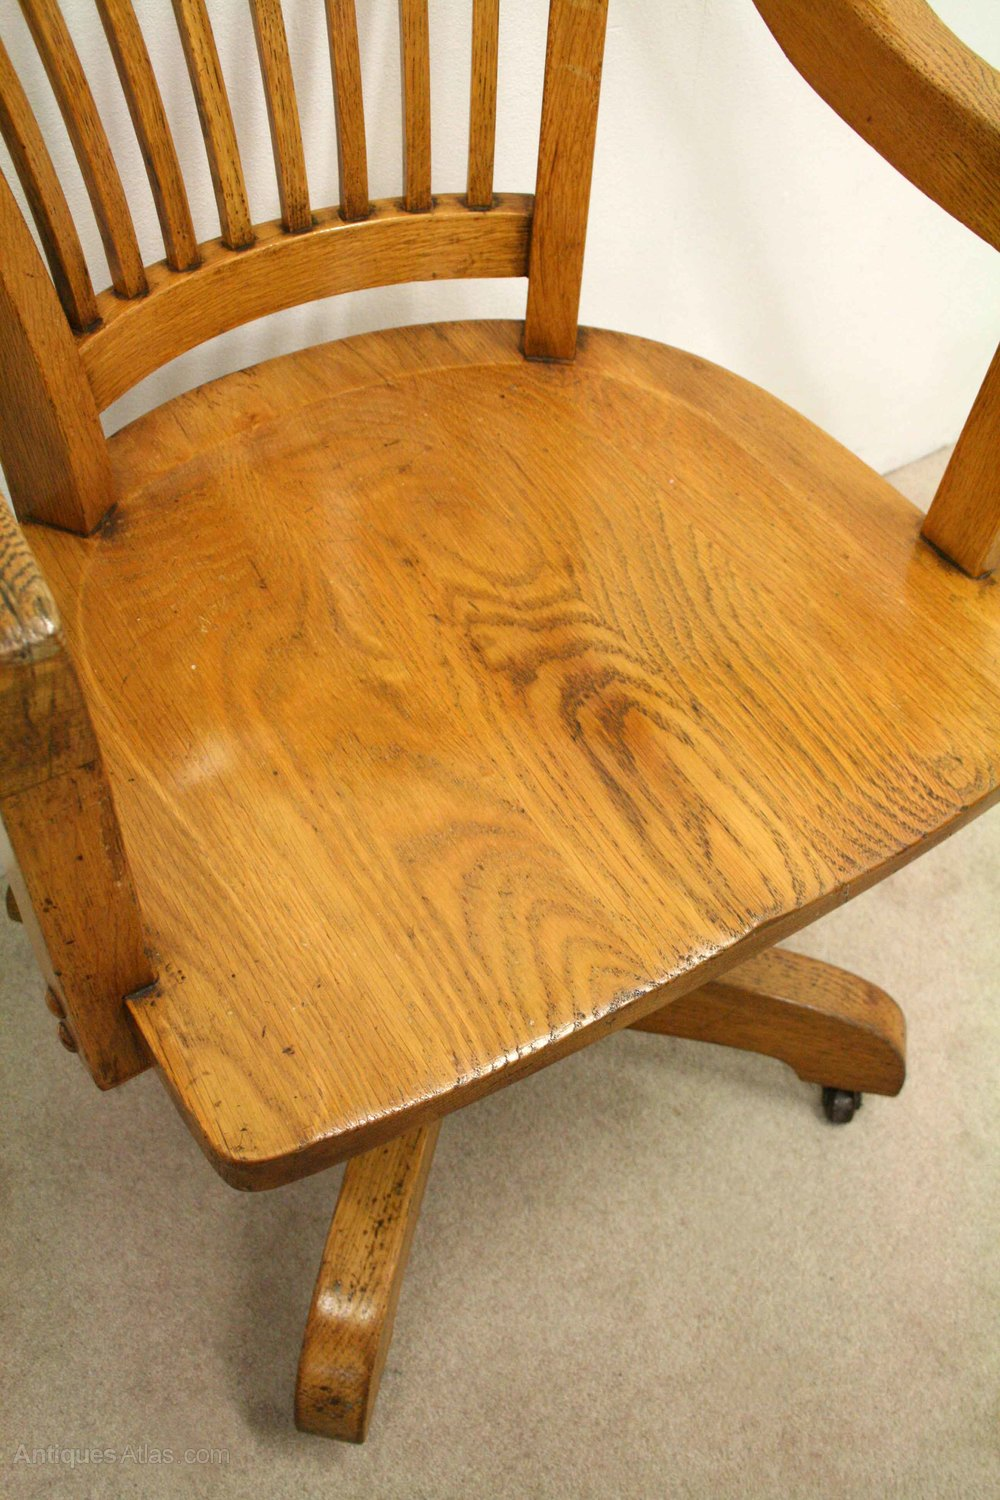 Solid Oak Revolving Desk Chair Antiques Atlas : SolidOakRevolvingDeskChairas178a2316z 4 Dining Chairs for <strong>Bad Backs</strong> from antiques-atlas.com size 1000 x 1500 jpeg 291kB